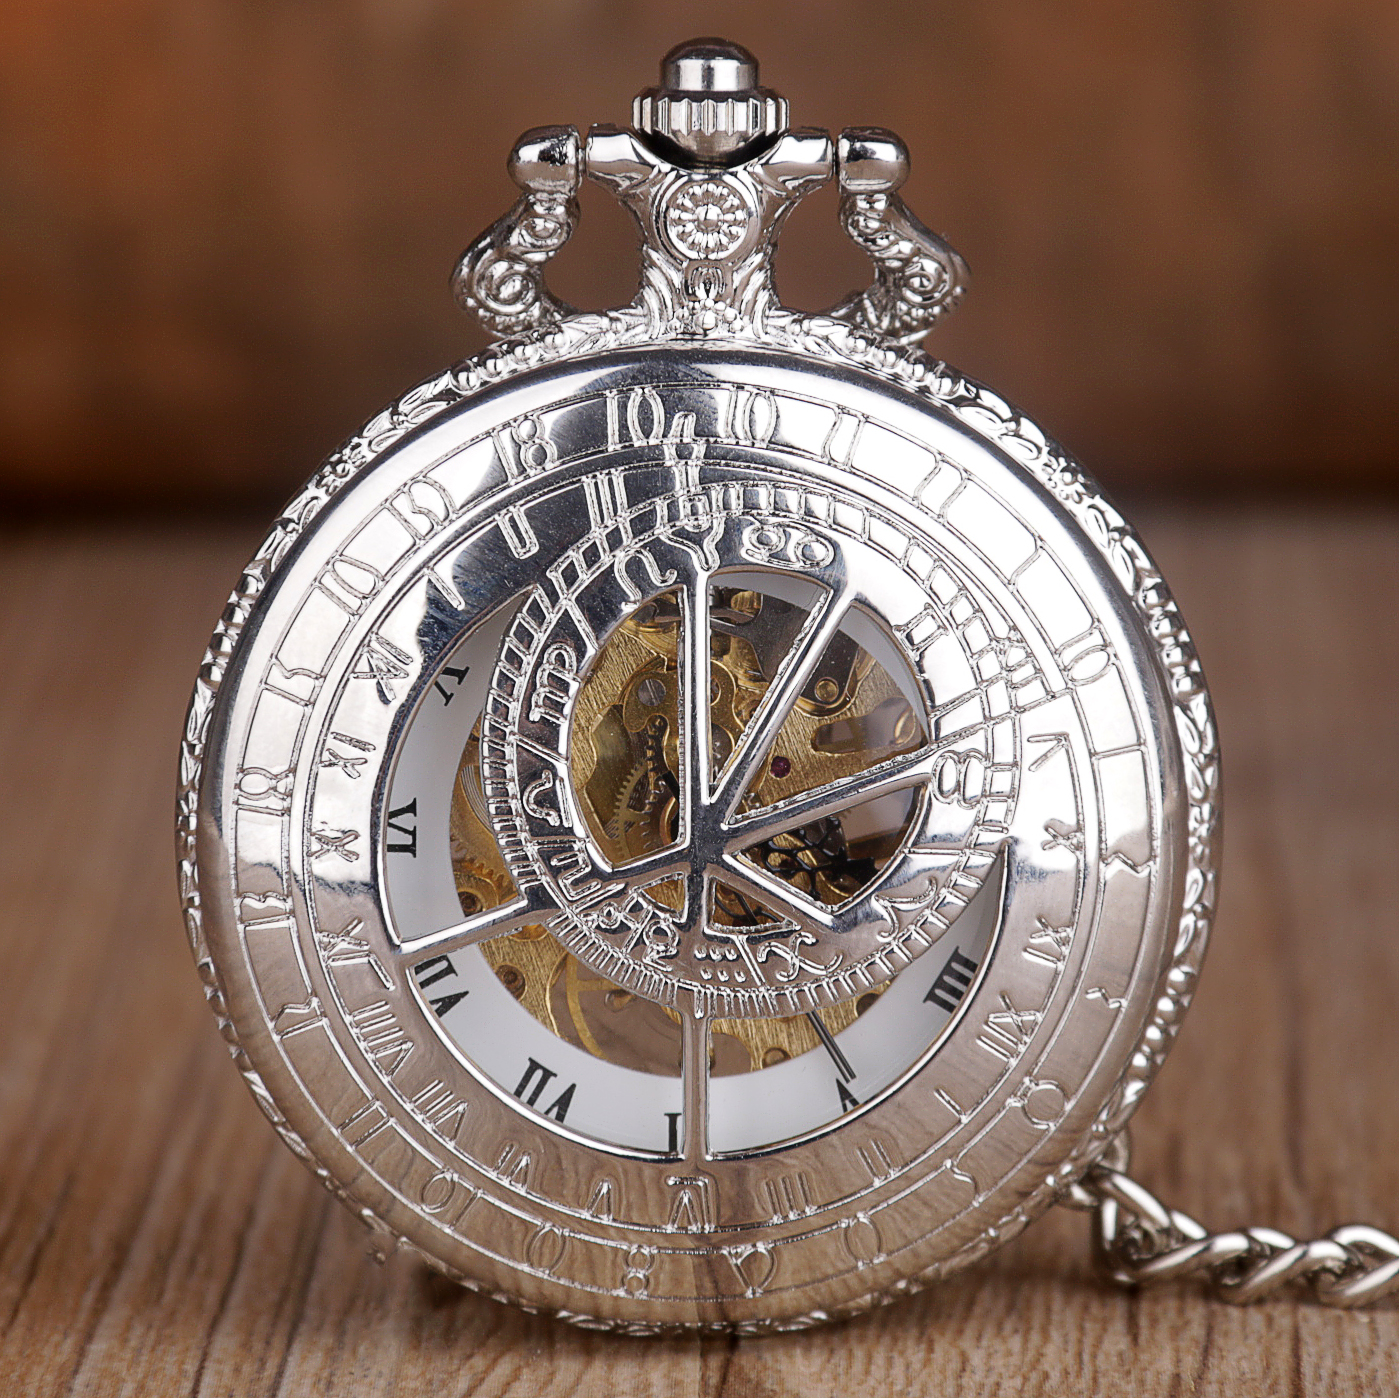 Silver Steampunk Pocket Watches Mechanical Pocket Watches Skeleton Vintage Hand Winding Pocket Fob Watch With Fob Chain